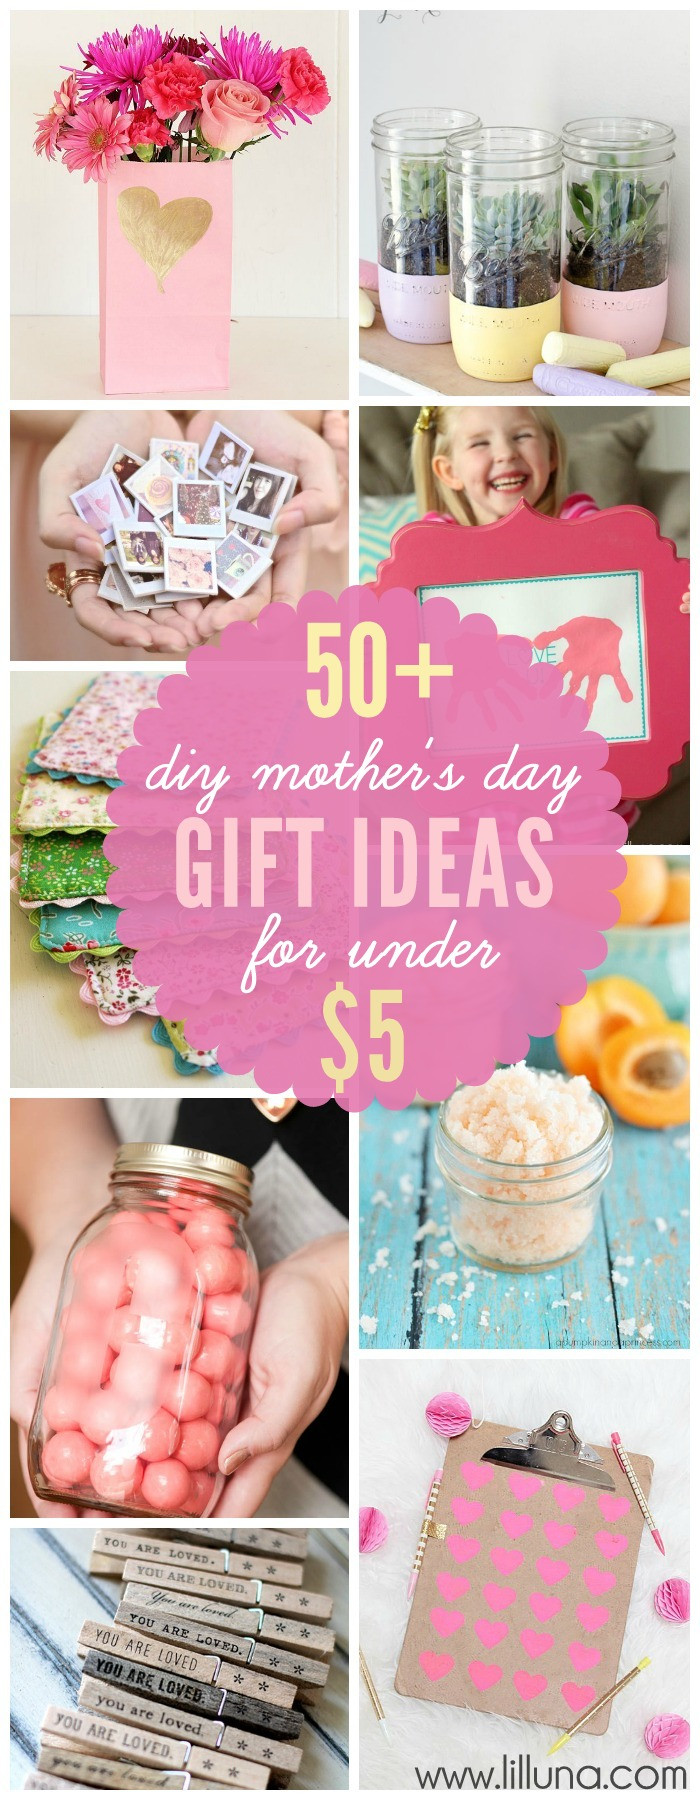 Best ideas about DIY Mother Day Gifts . Save or Pin Inexpensive DIY Mother s Day Gift Ideas Now.